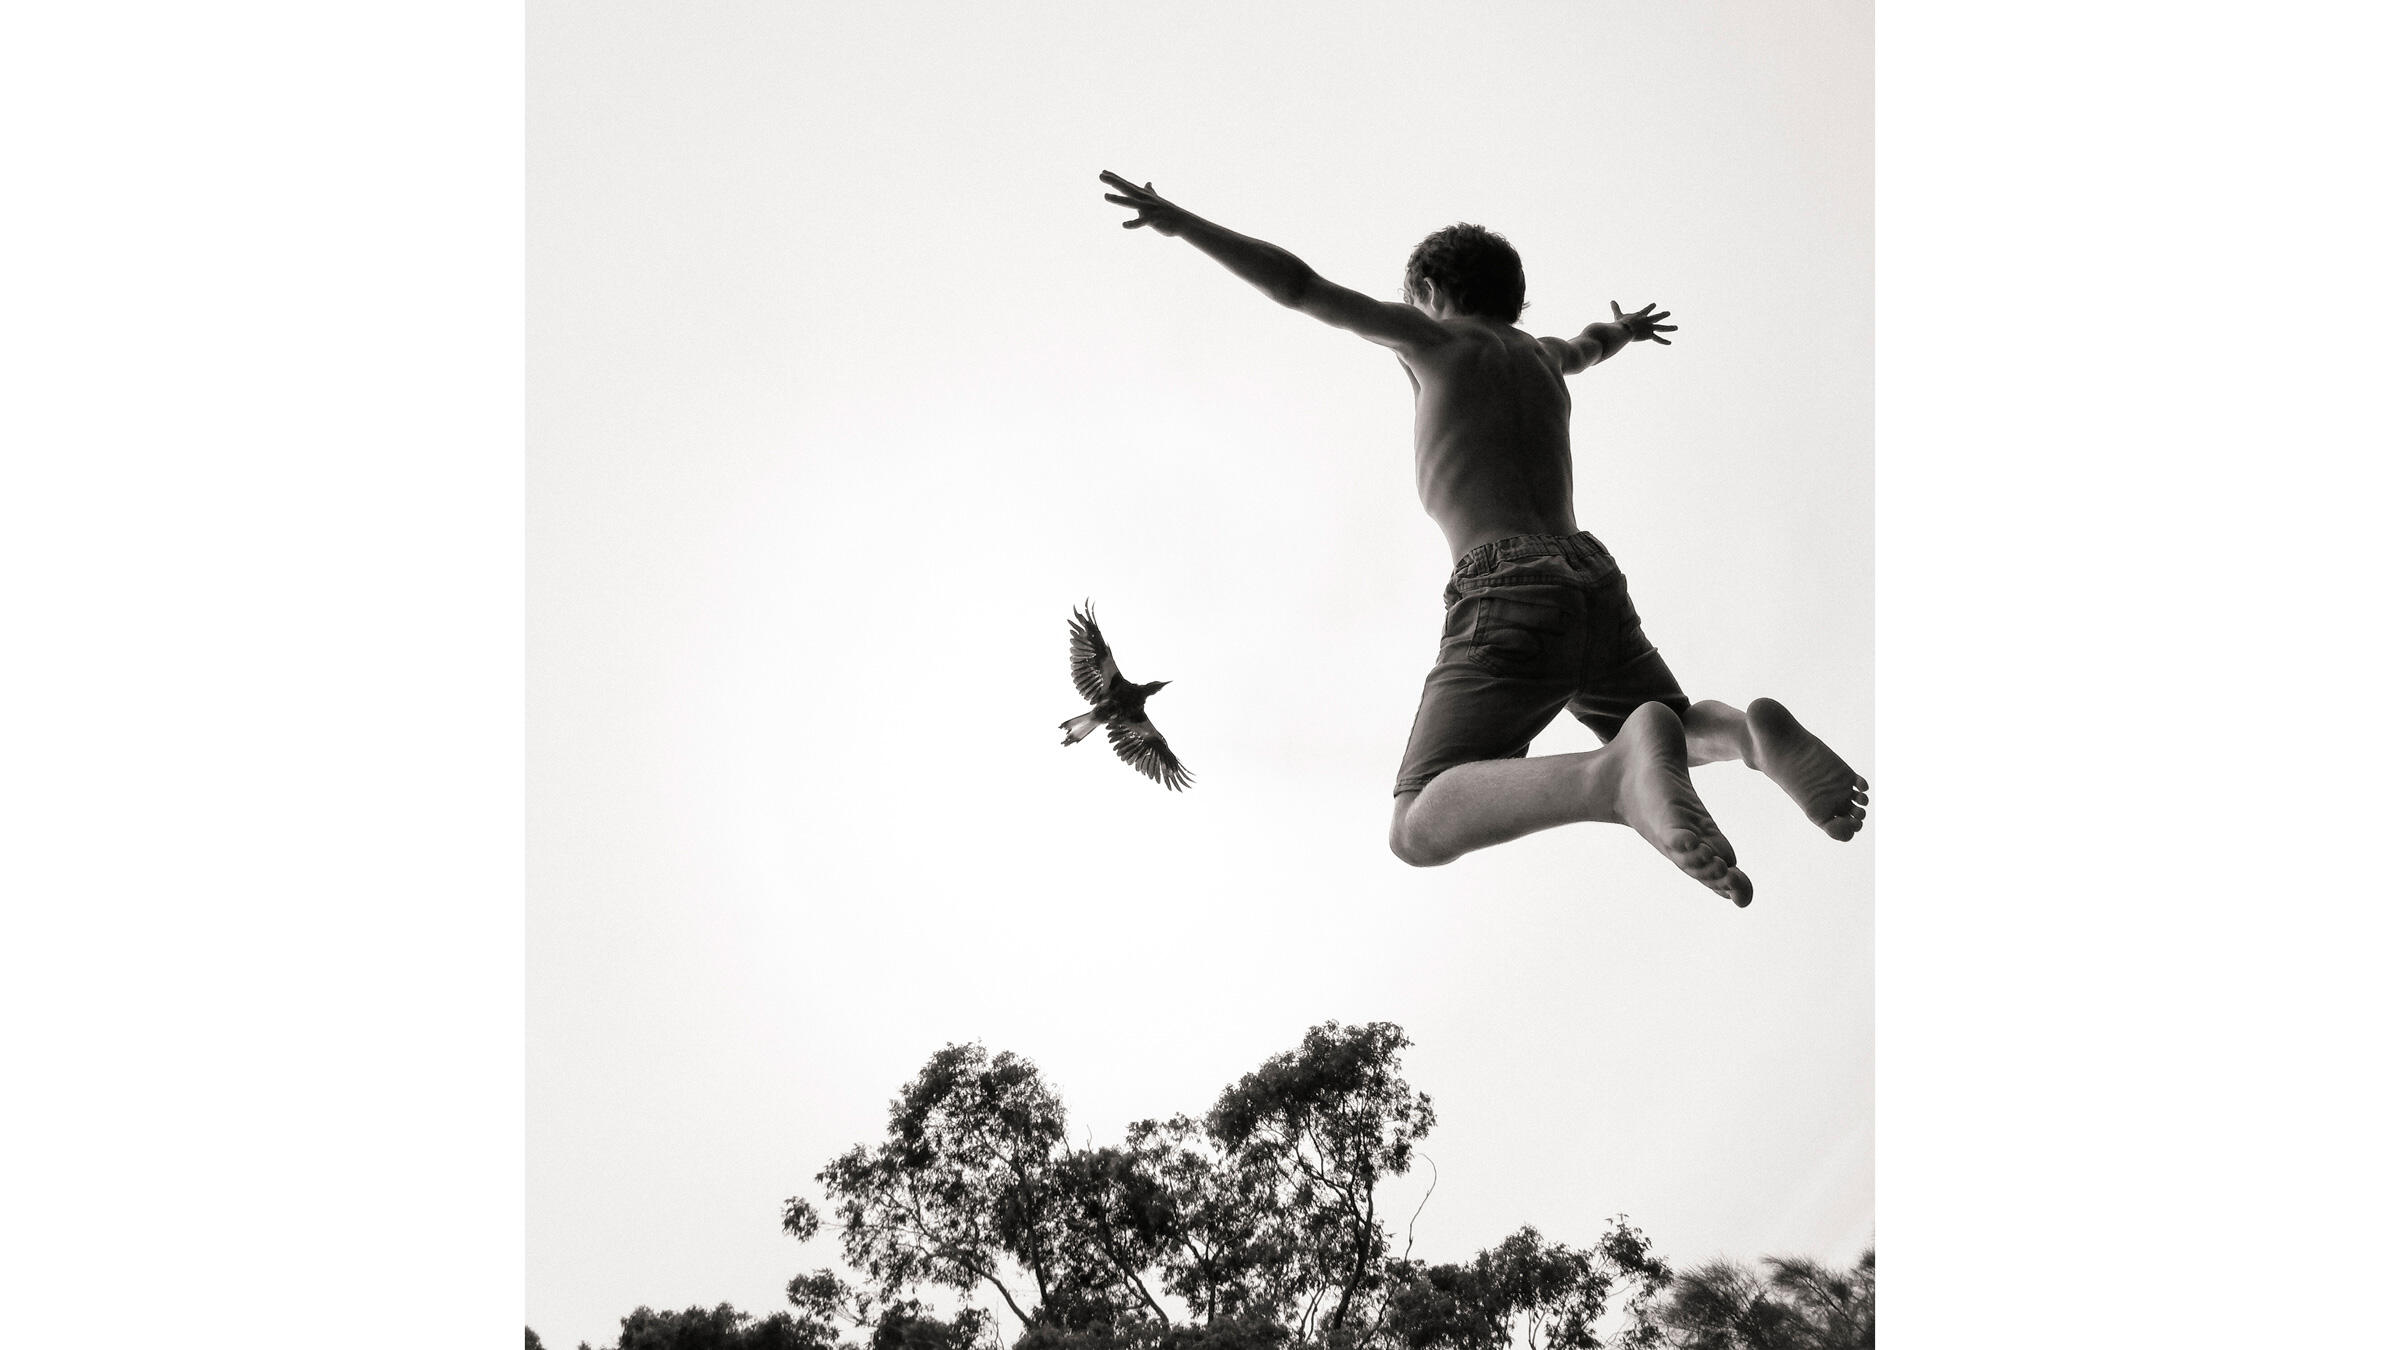 Leaping into the new year. Cameron Bloom